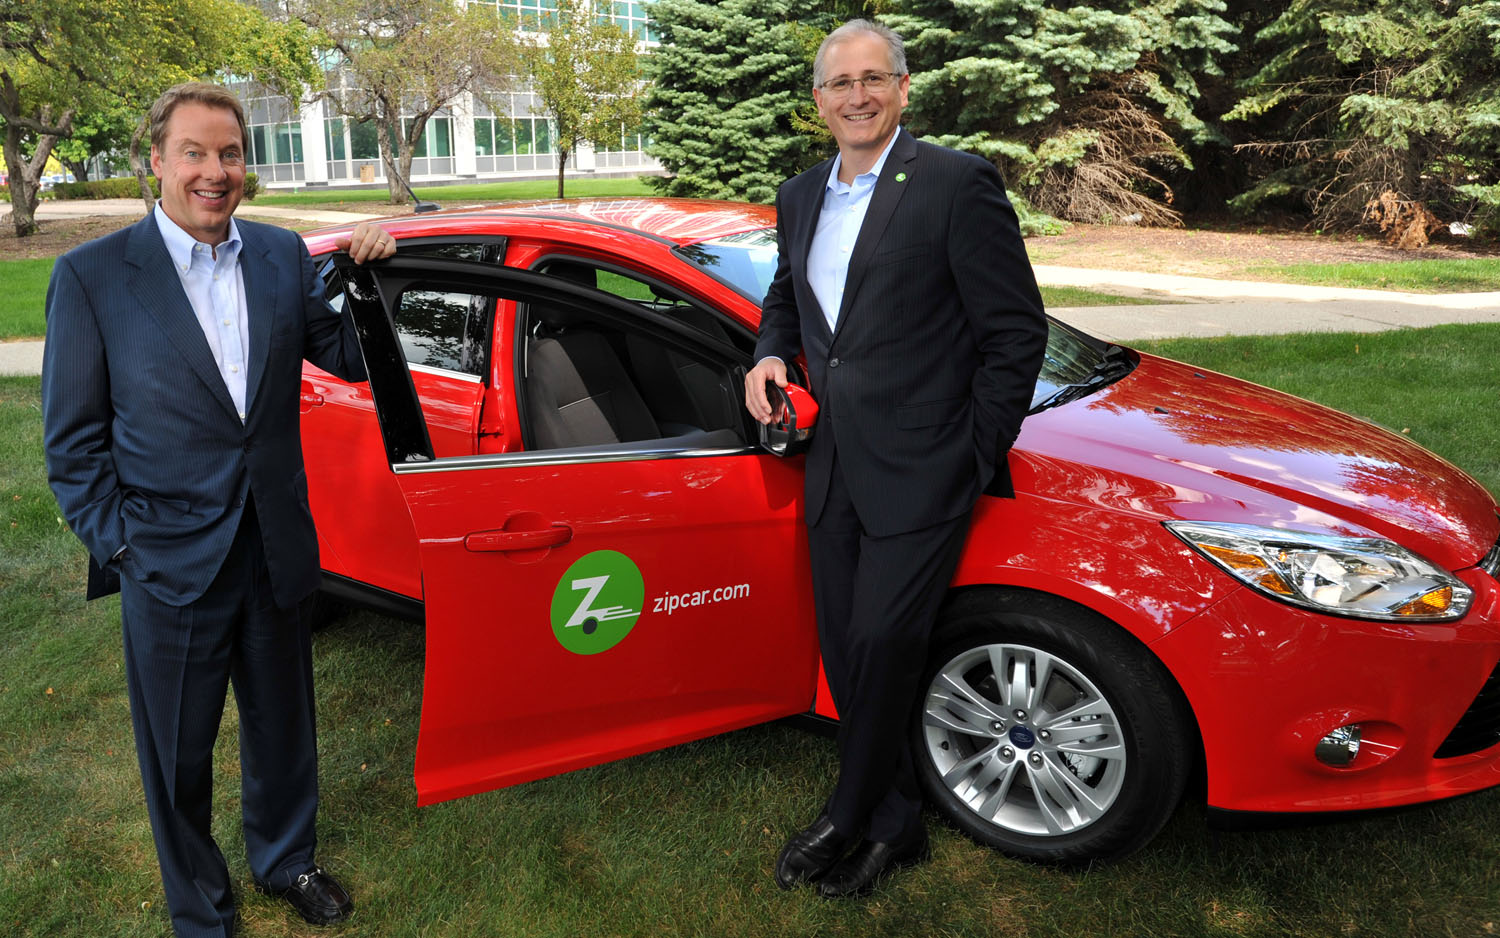 Ford Focuses On Zipcar S University Fleets Motor Trend